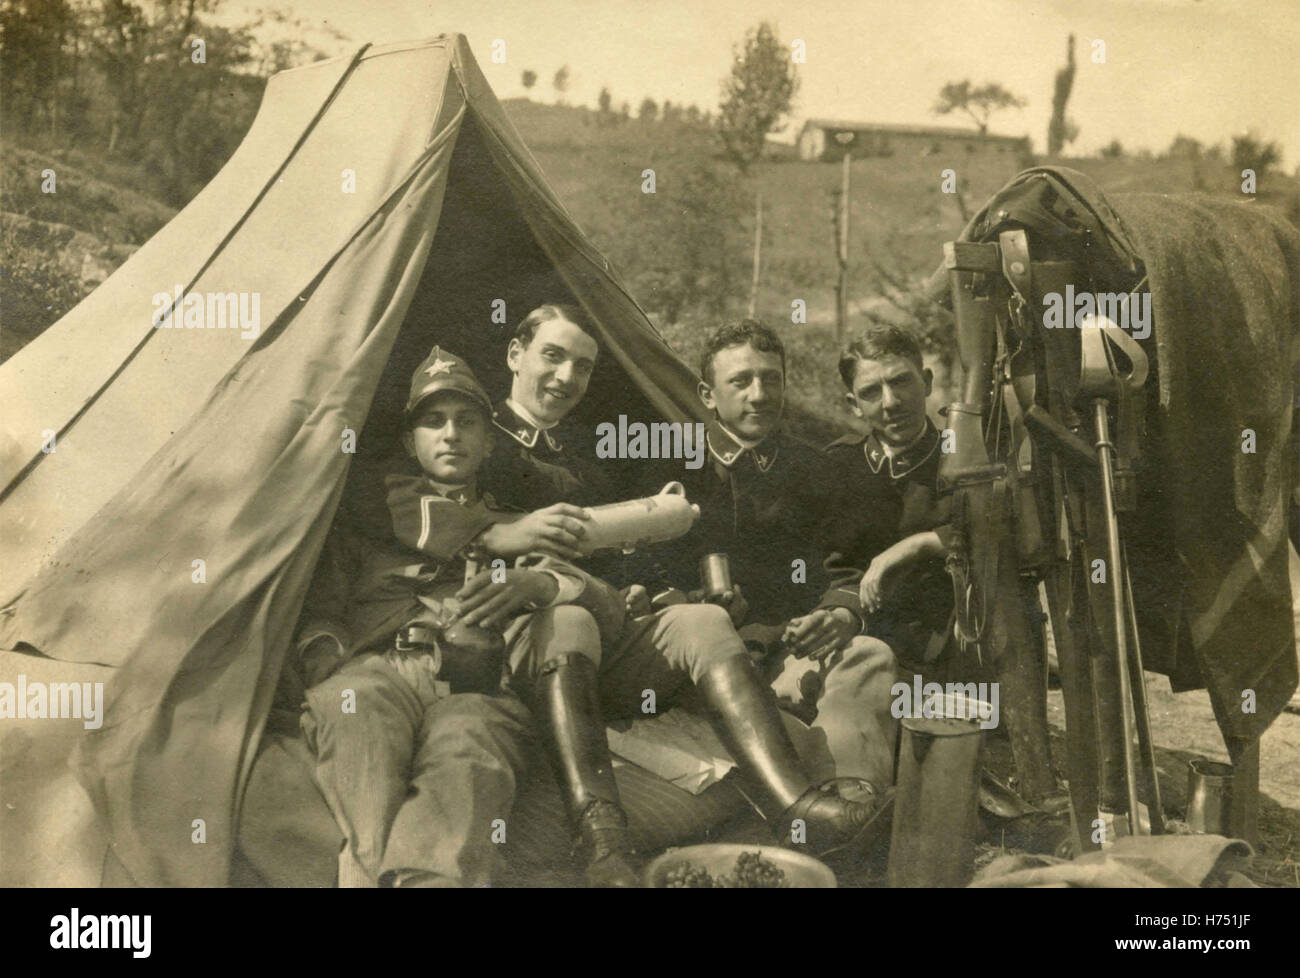 Officers of the Royal Italian Army cavalry in a tent - Stock Image